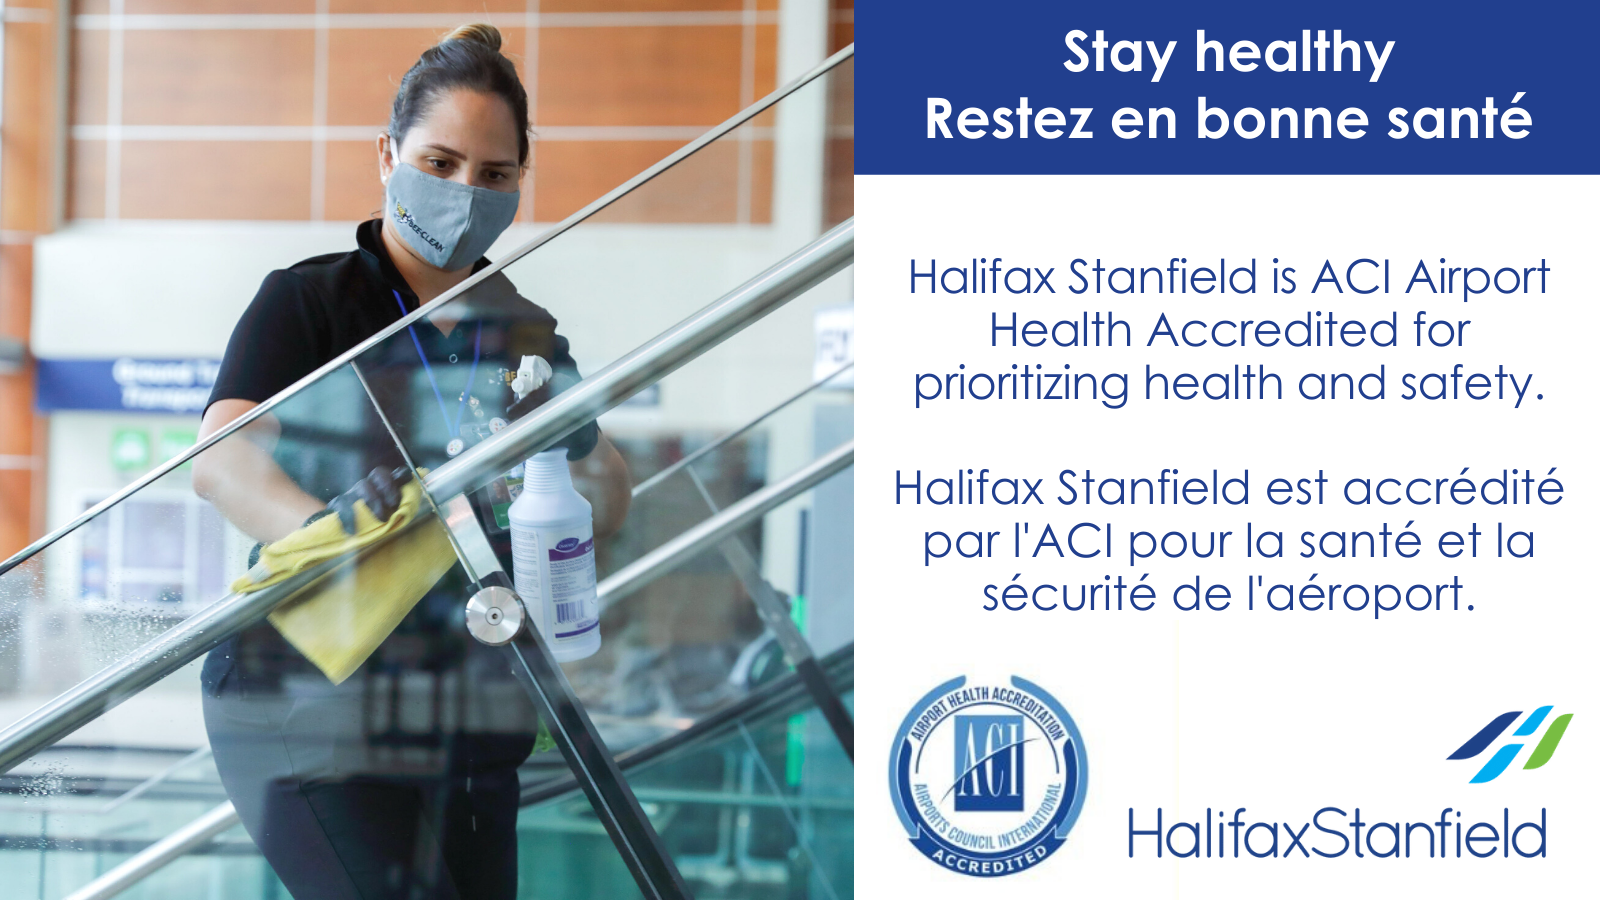 Halifax Stanfield Receives Airport Health Accreditation from Airports Council International